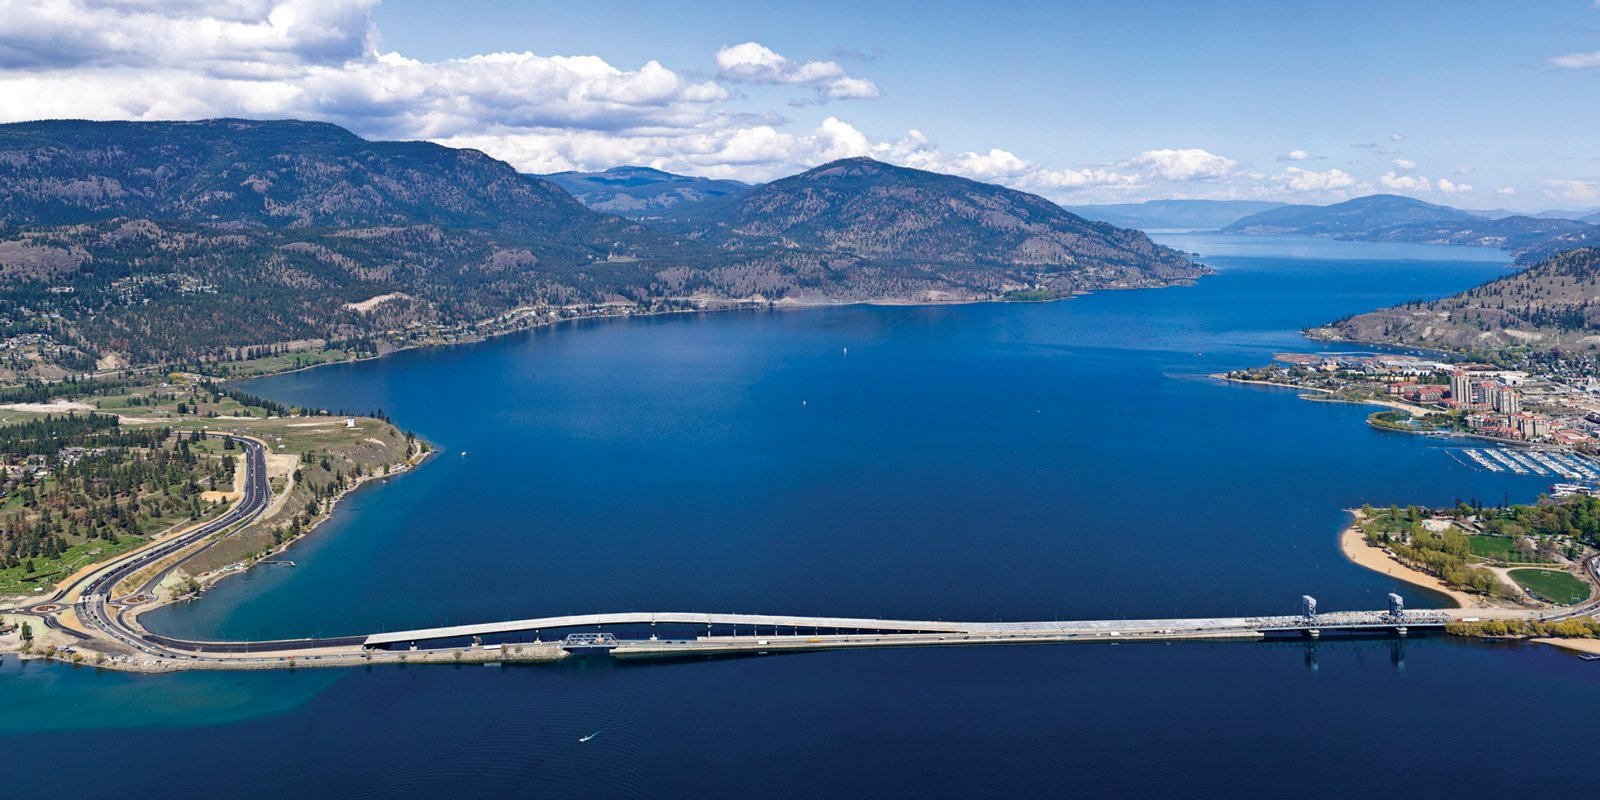 helicopter tours kelowna with Ikon Adventures Helicopter Tours Kelowna Bc on Westside Bench Kelowna Wine Tourglass At Qg likewise Hanger Blog 3 likewise Tours furthermore Charter flights cambridge bay nu additionally Charter flights gjoa haven nu.